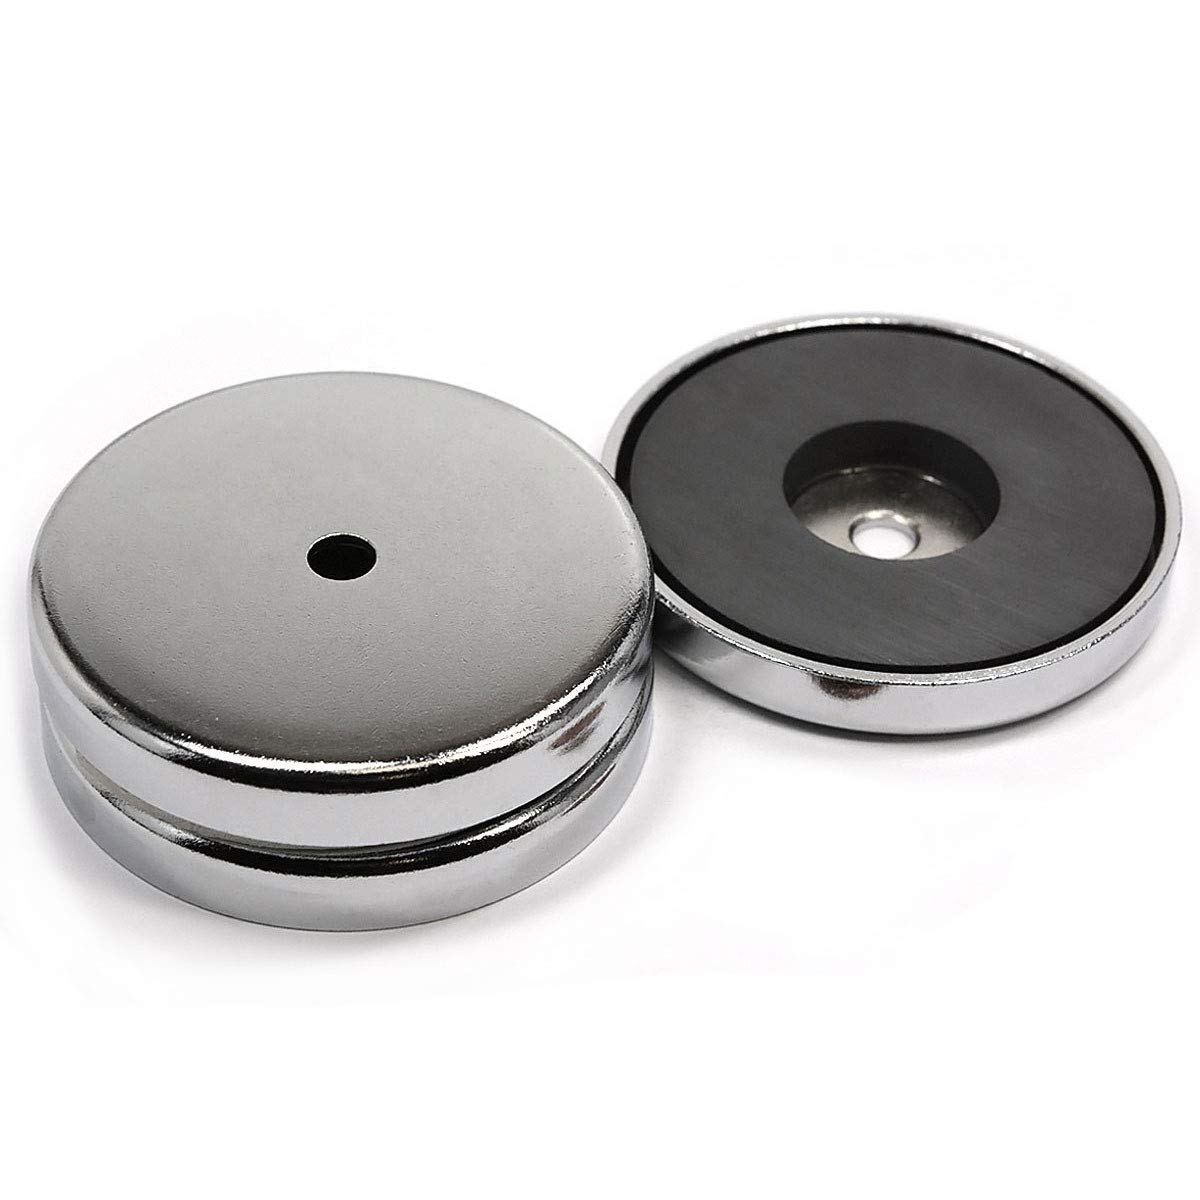 CMS Magnetics Powerful Cup Magnets 80 LB Pulling Power Diameter 2.65'' RB70 3 Pieces of by CMS Magnetics (Image #1)